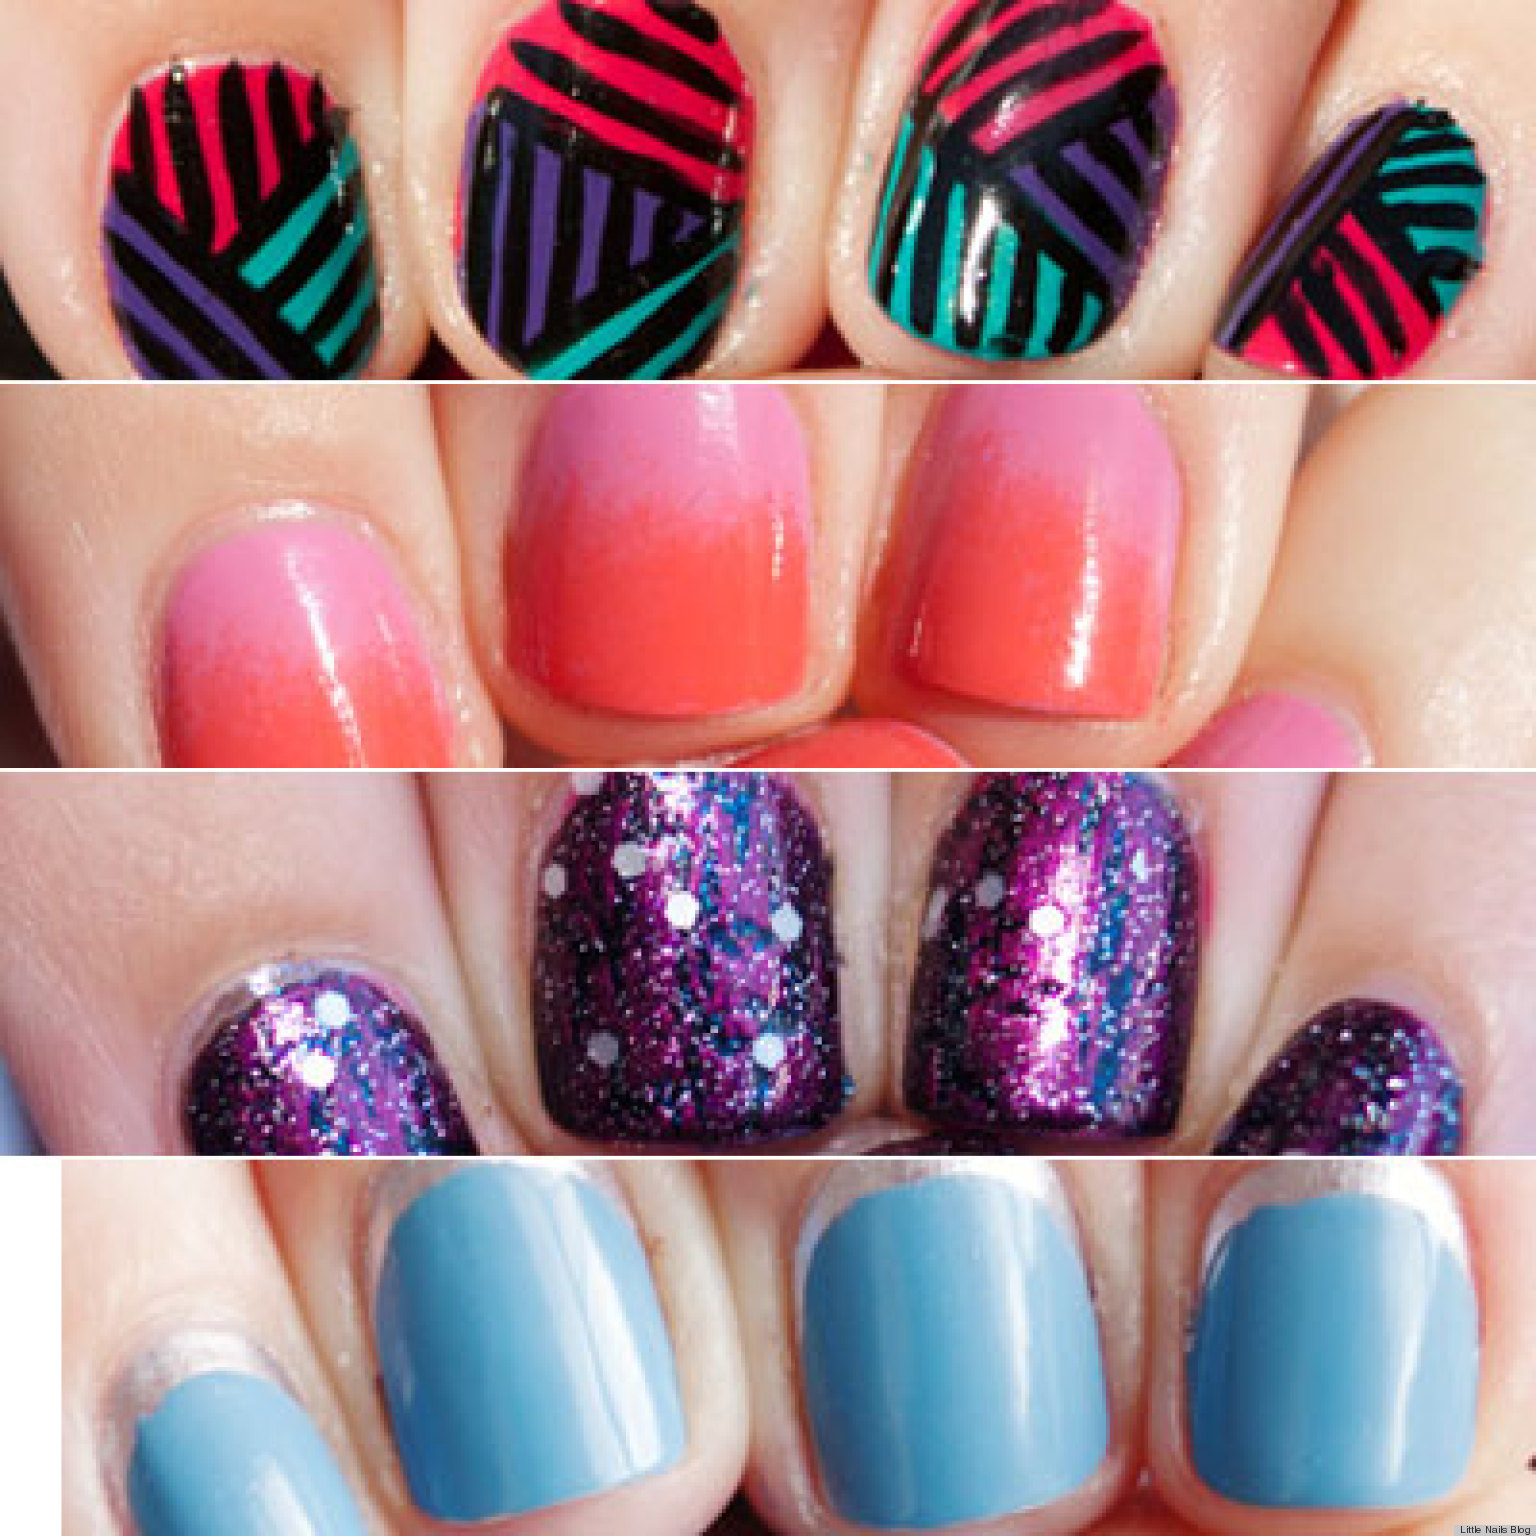 13 Nail Art Ideas For Teeny Tiny Fingertips PHOTOS